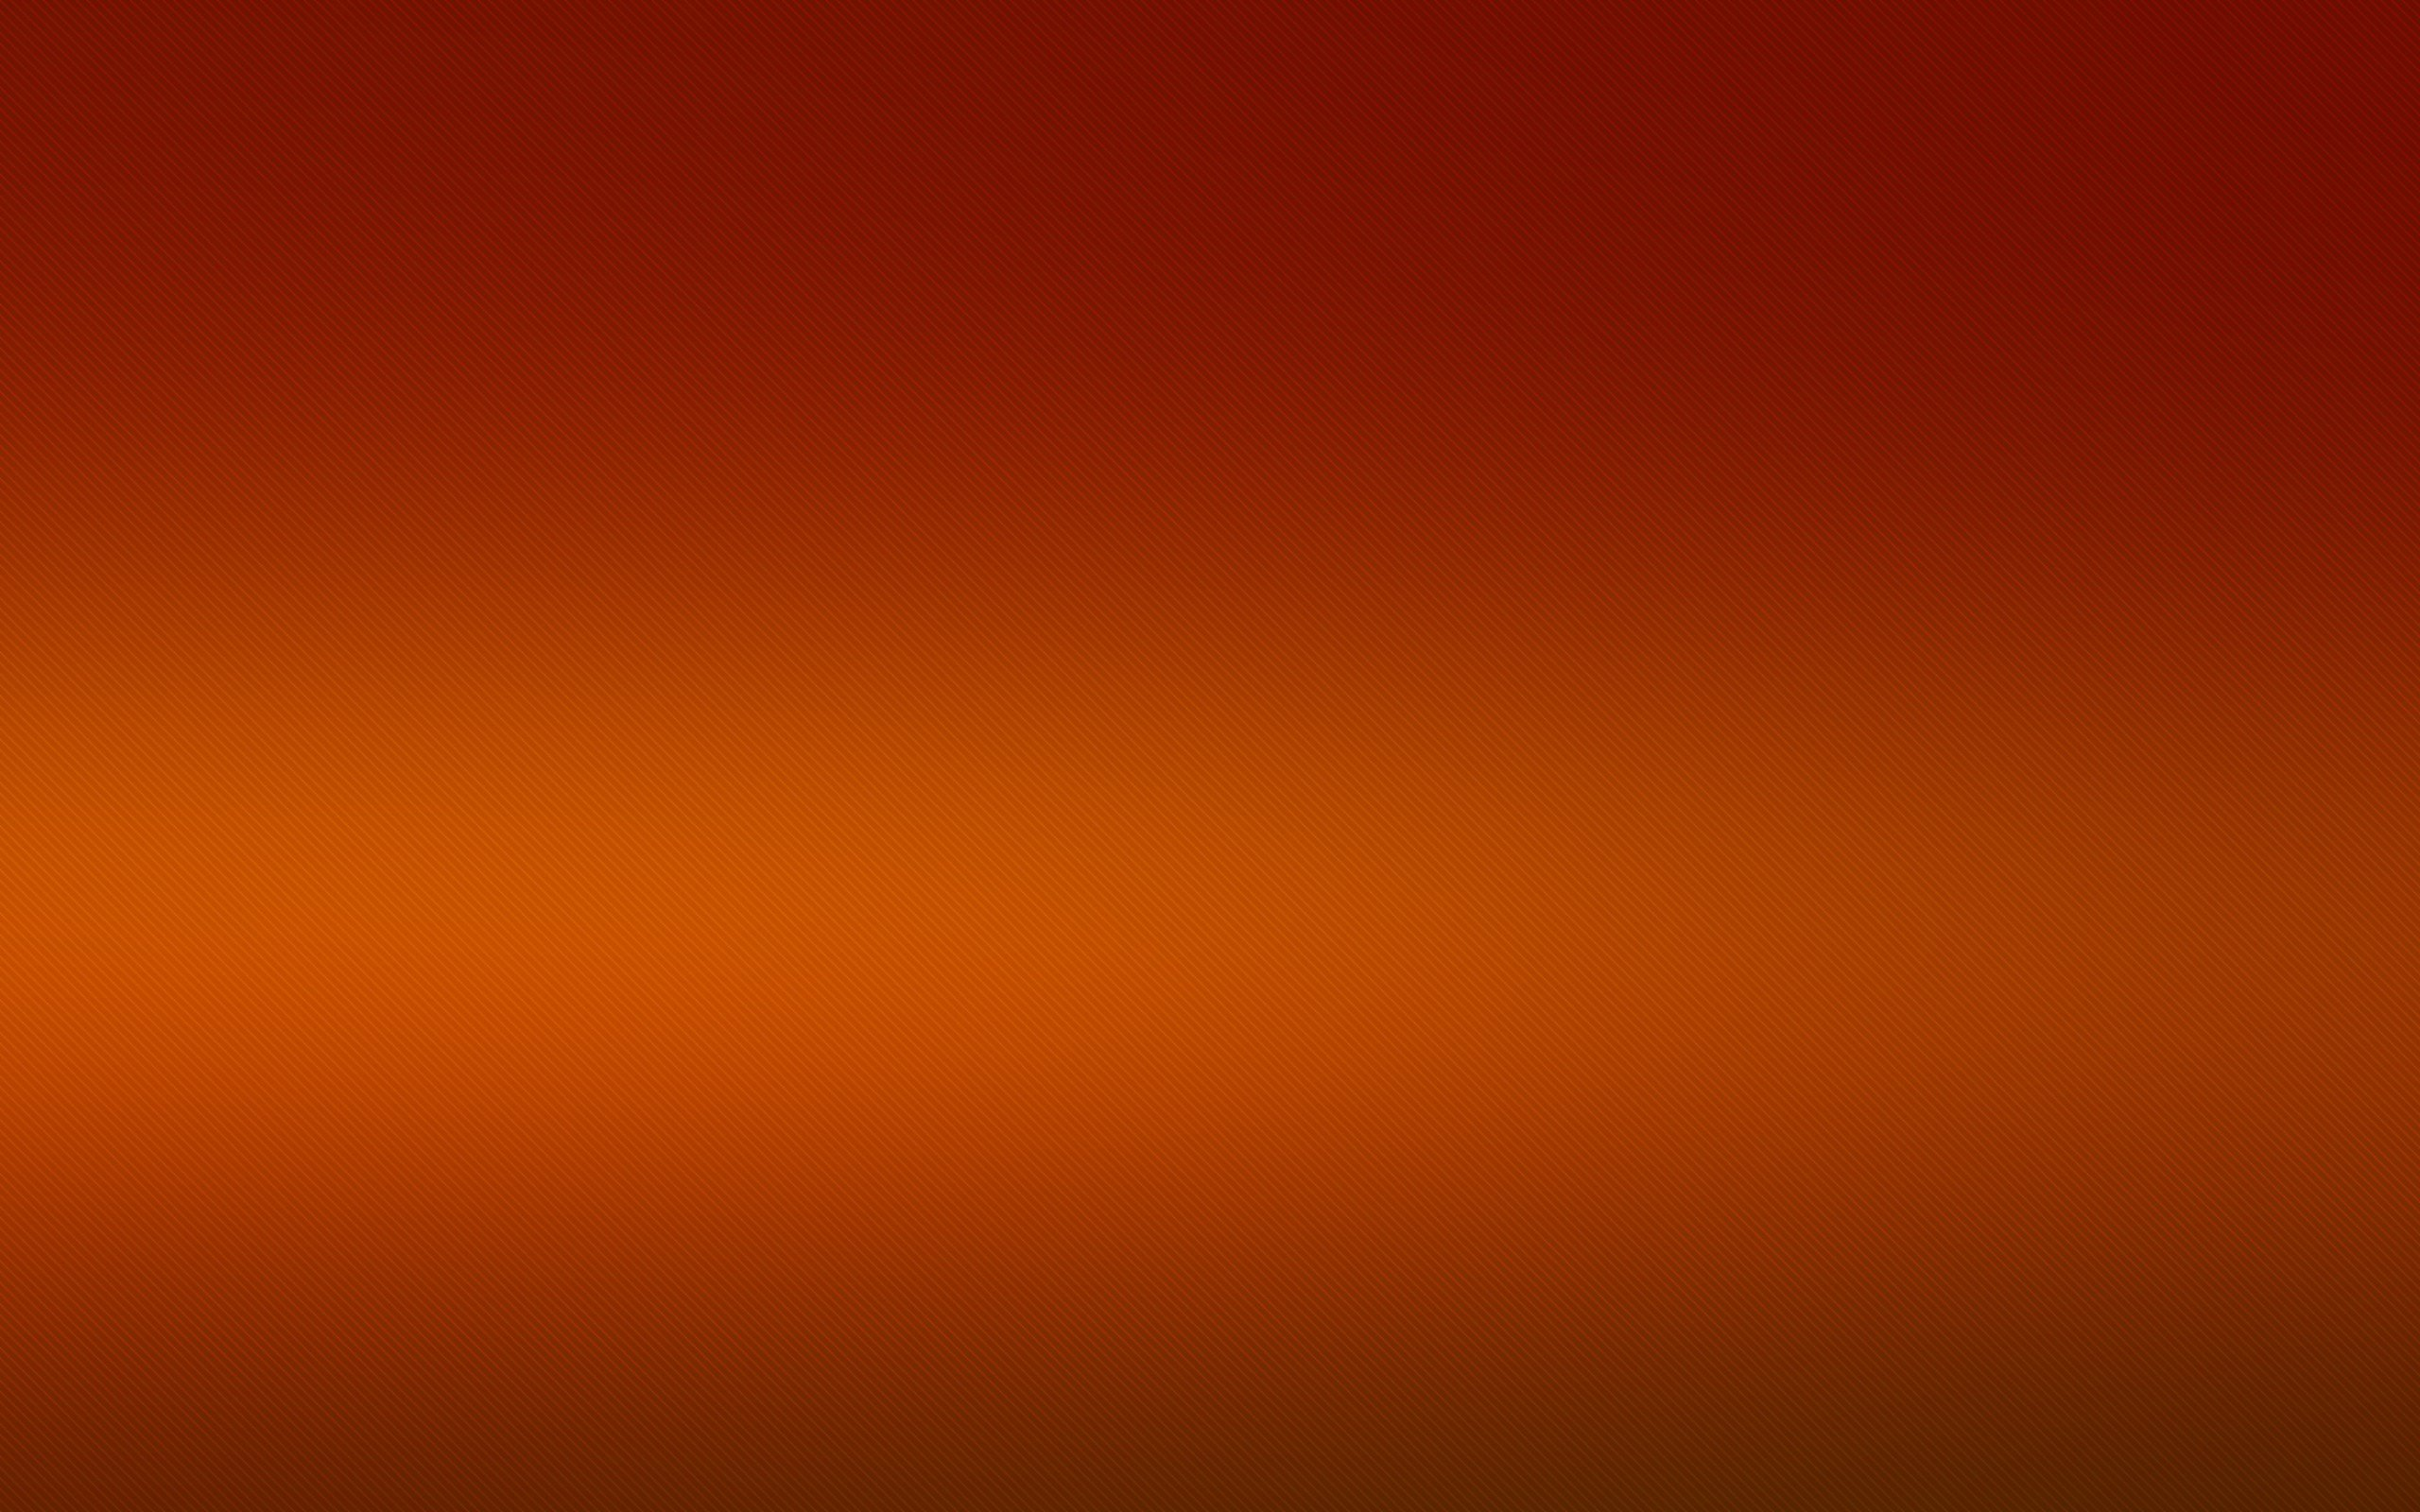 Dark Orange Wallpaper - WallpaperSafari